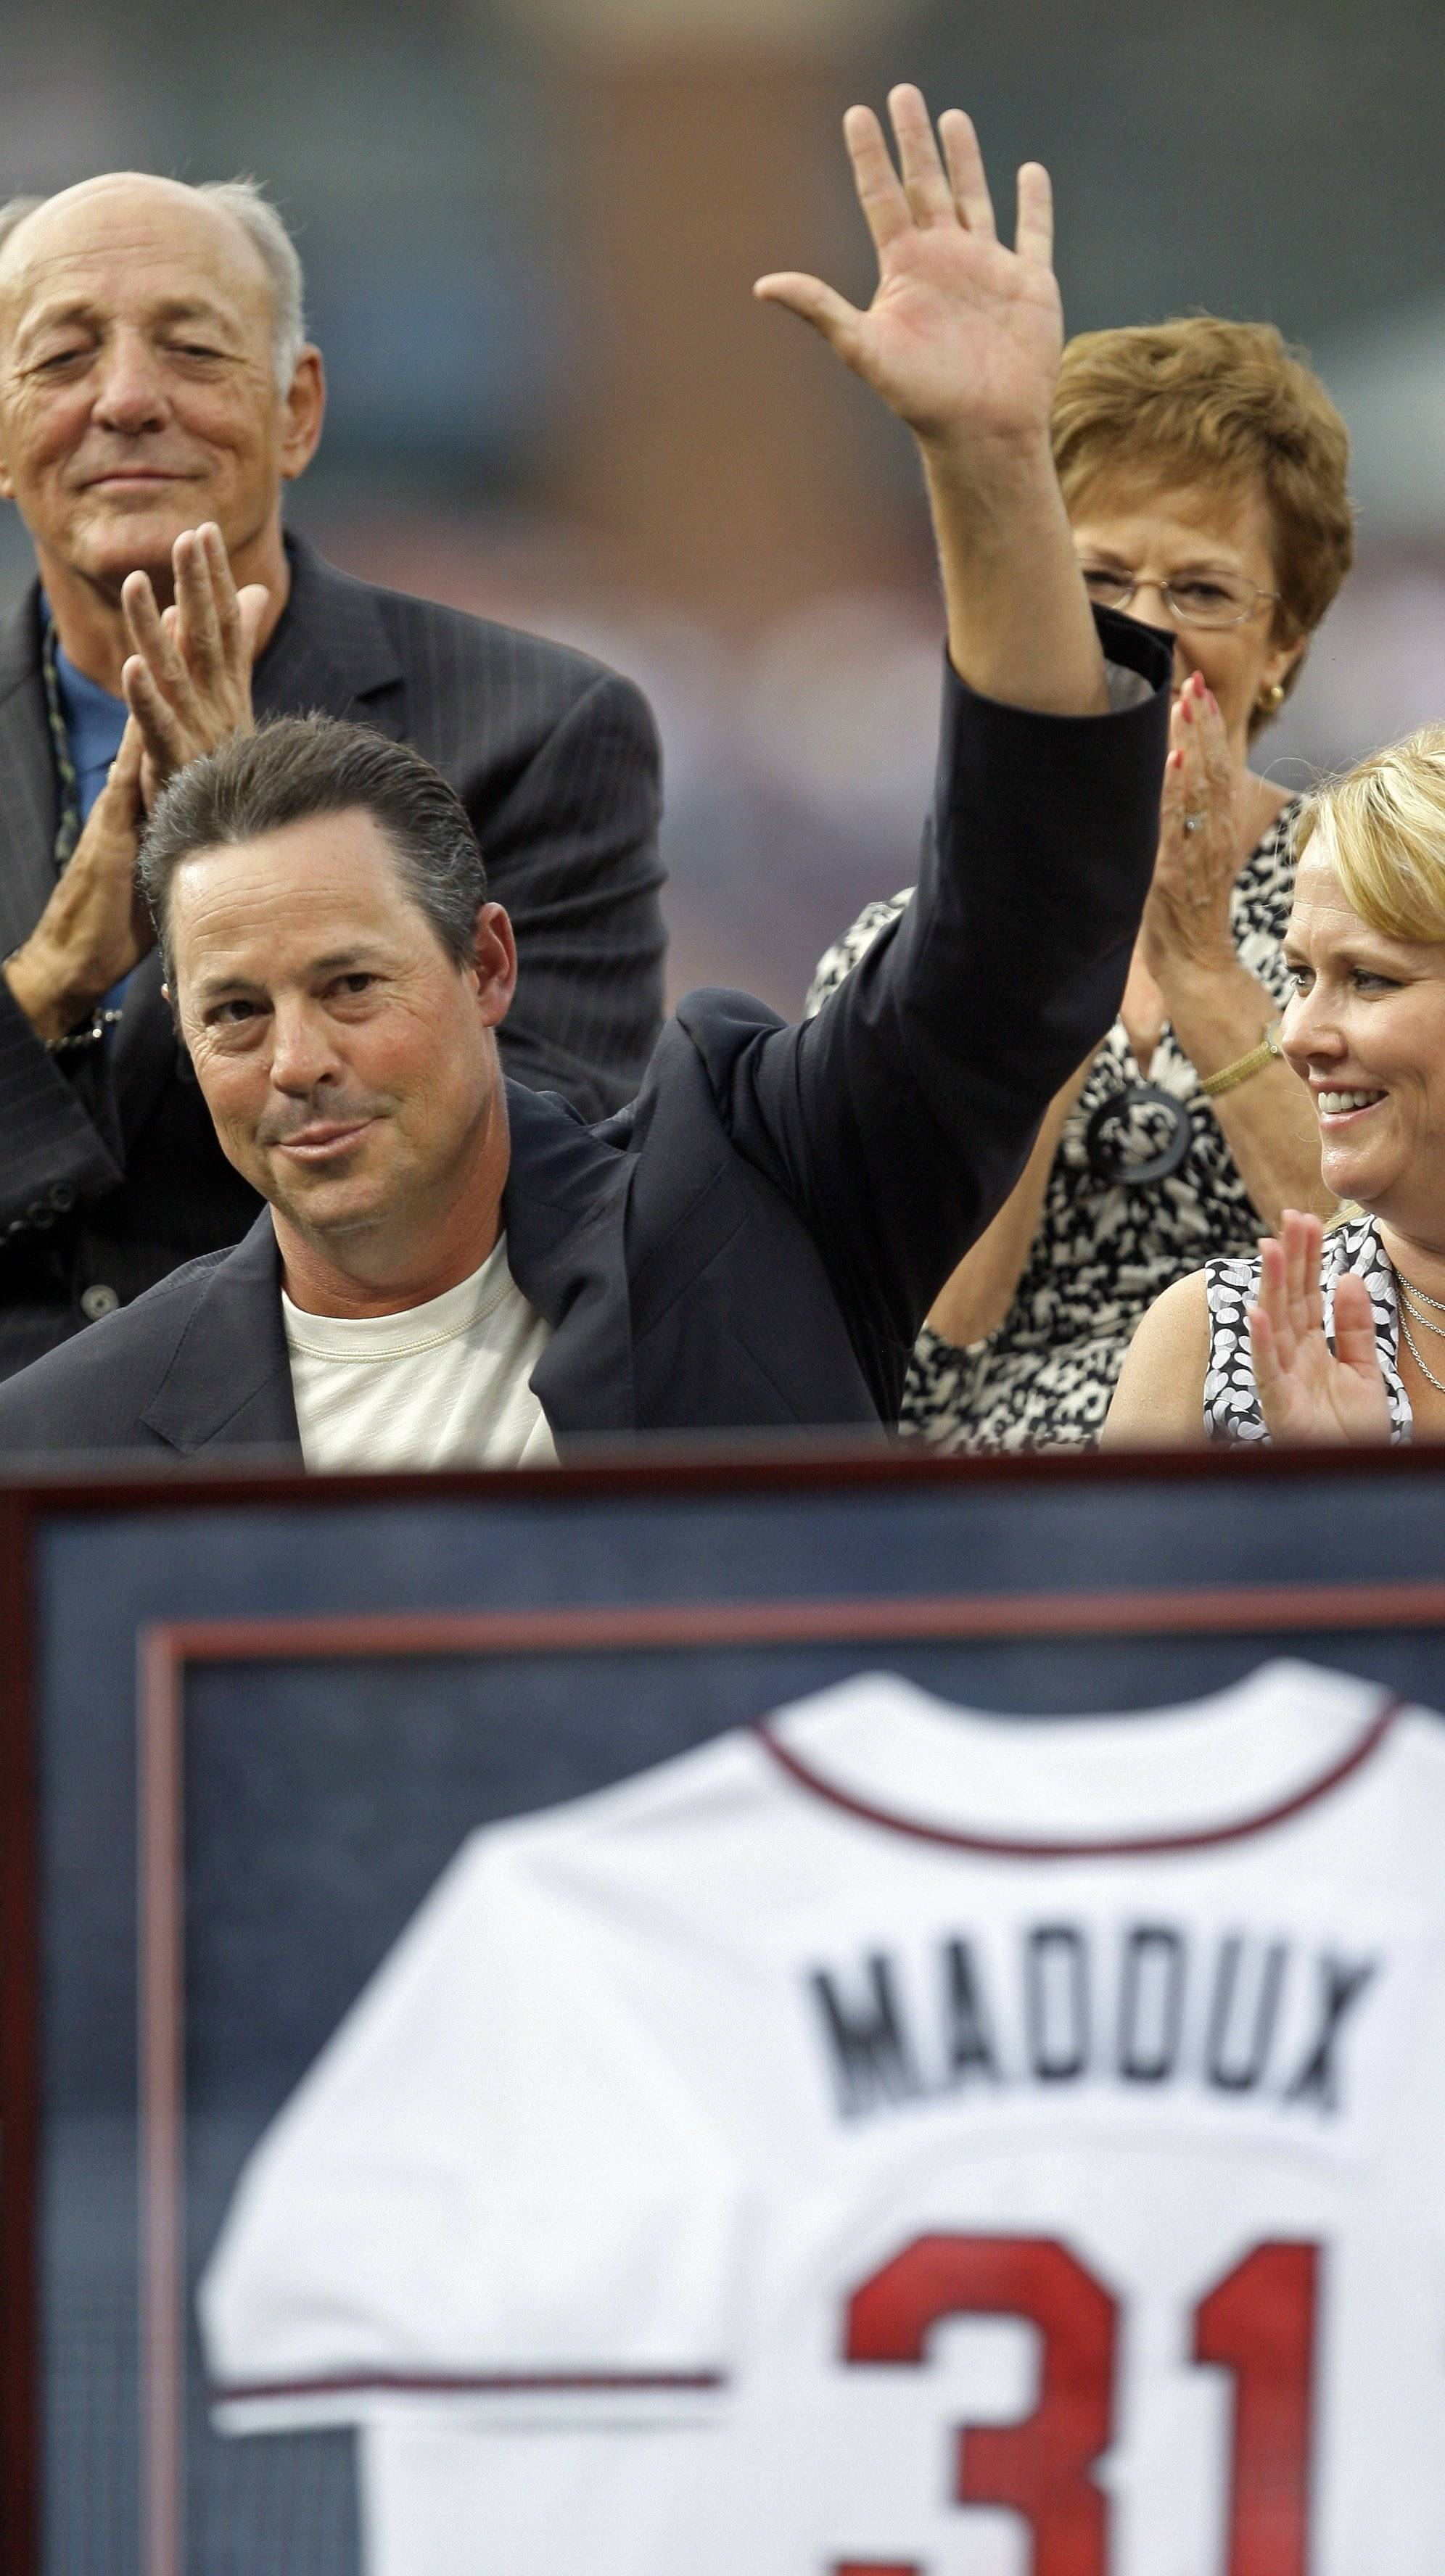 Former Atlanta Braves pitcher Greg Maddux waves to the crowd during a ceremony to retire his number 31 before a baseball game against the New York Mets in Atlanta, Friday, July, 17, 2009.